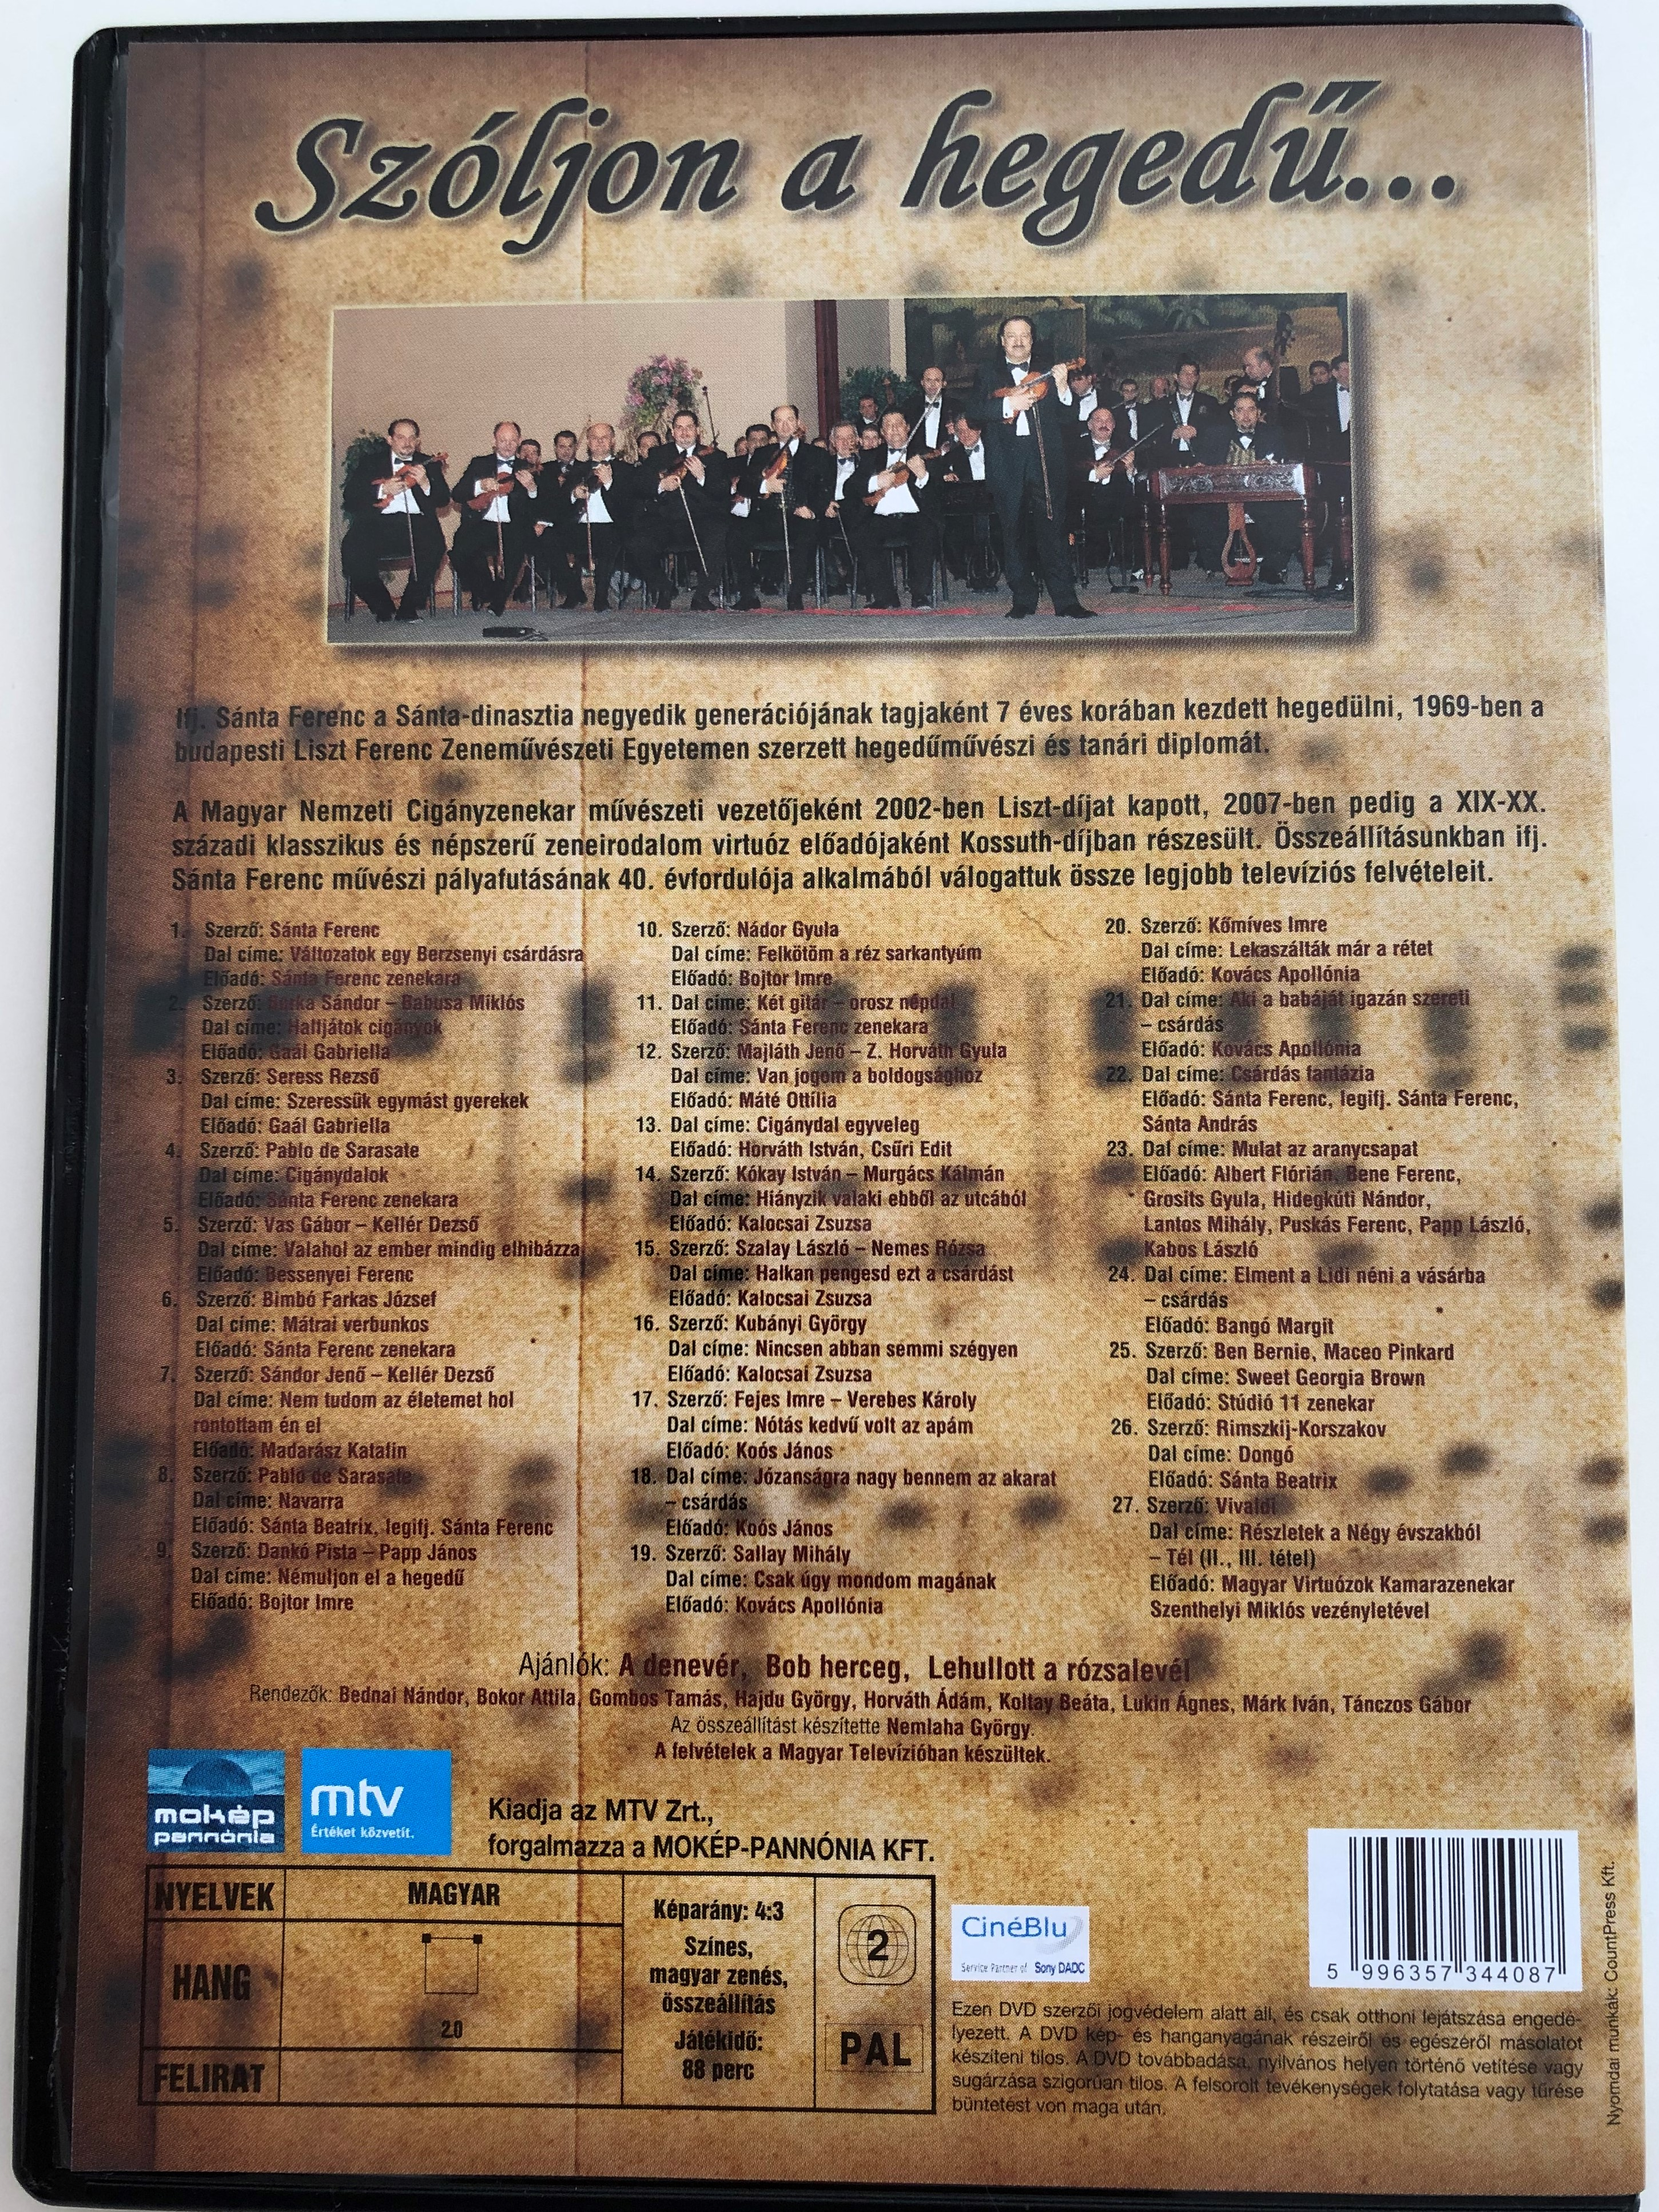 sz-ljon-a-heged-...-dvd-ifj.-s-nta-ferenc-hungarian-gypsy-orchestra-conducted-by-szenthelyi-mikl-s-m-k-p-mtv-compilated-by-nemlaha-gy-rgy-2-.jpg